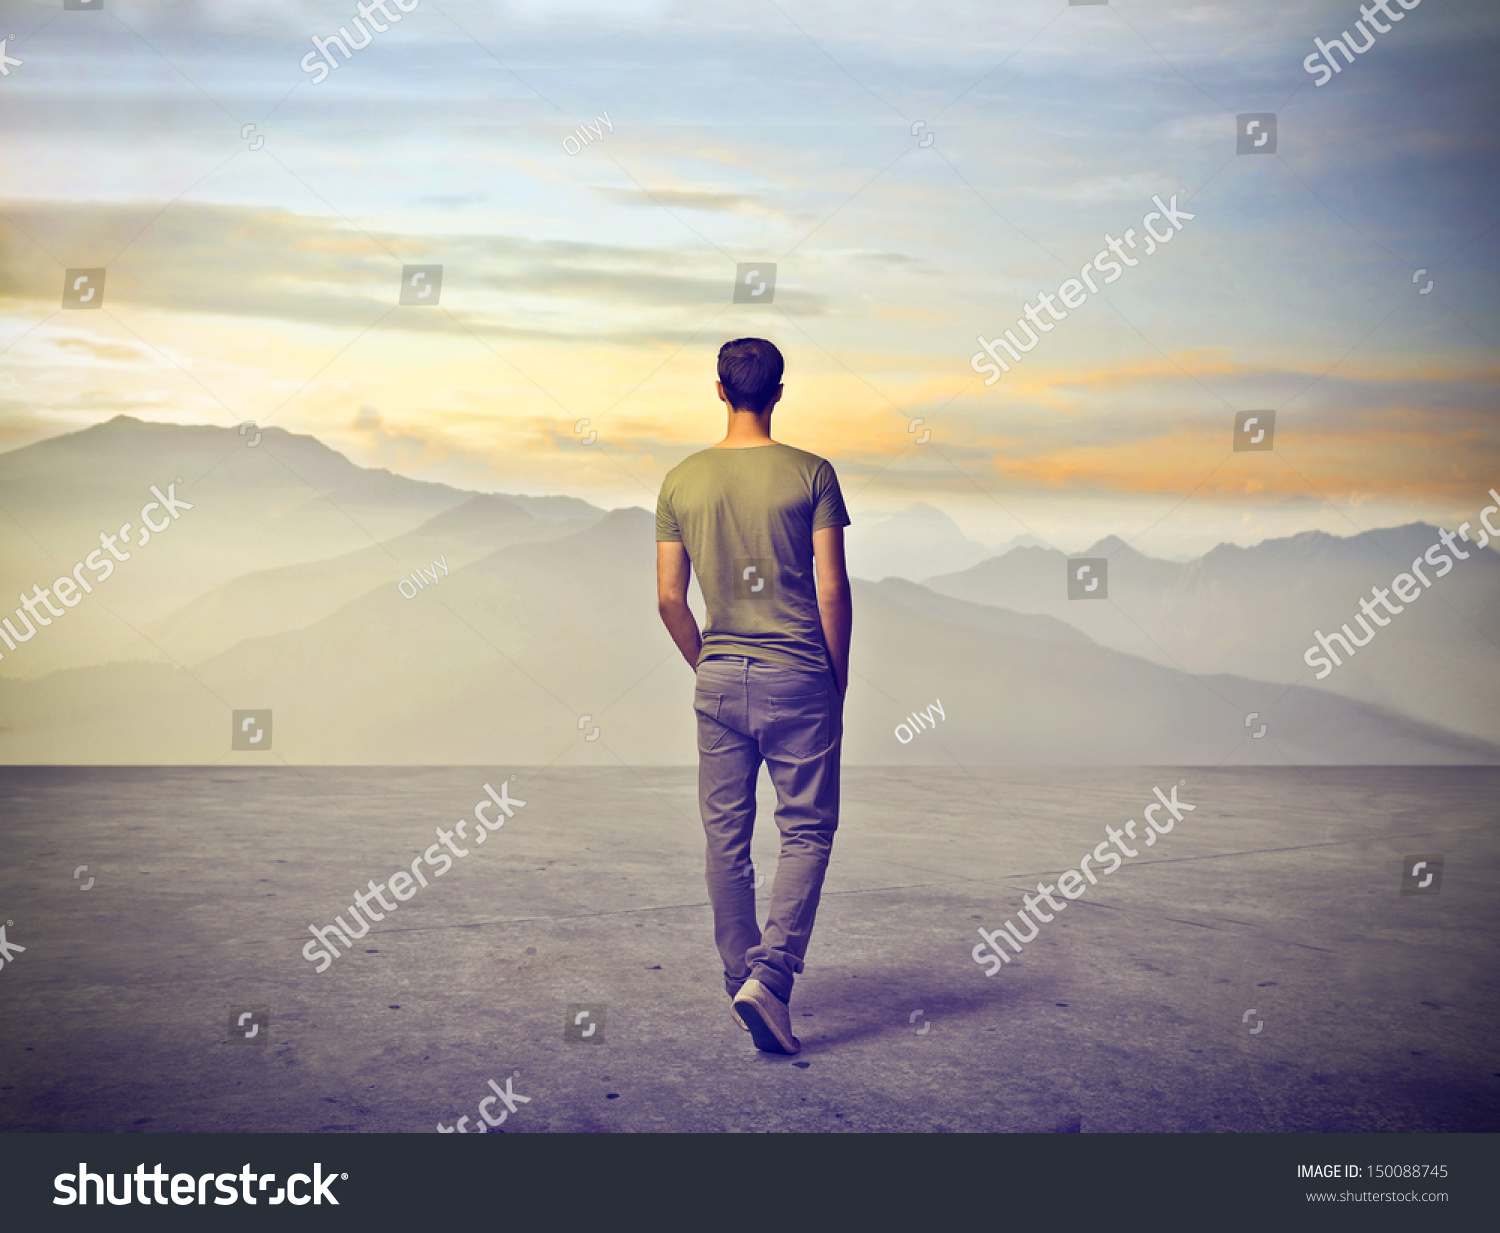 Man Walking Alone In Nature